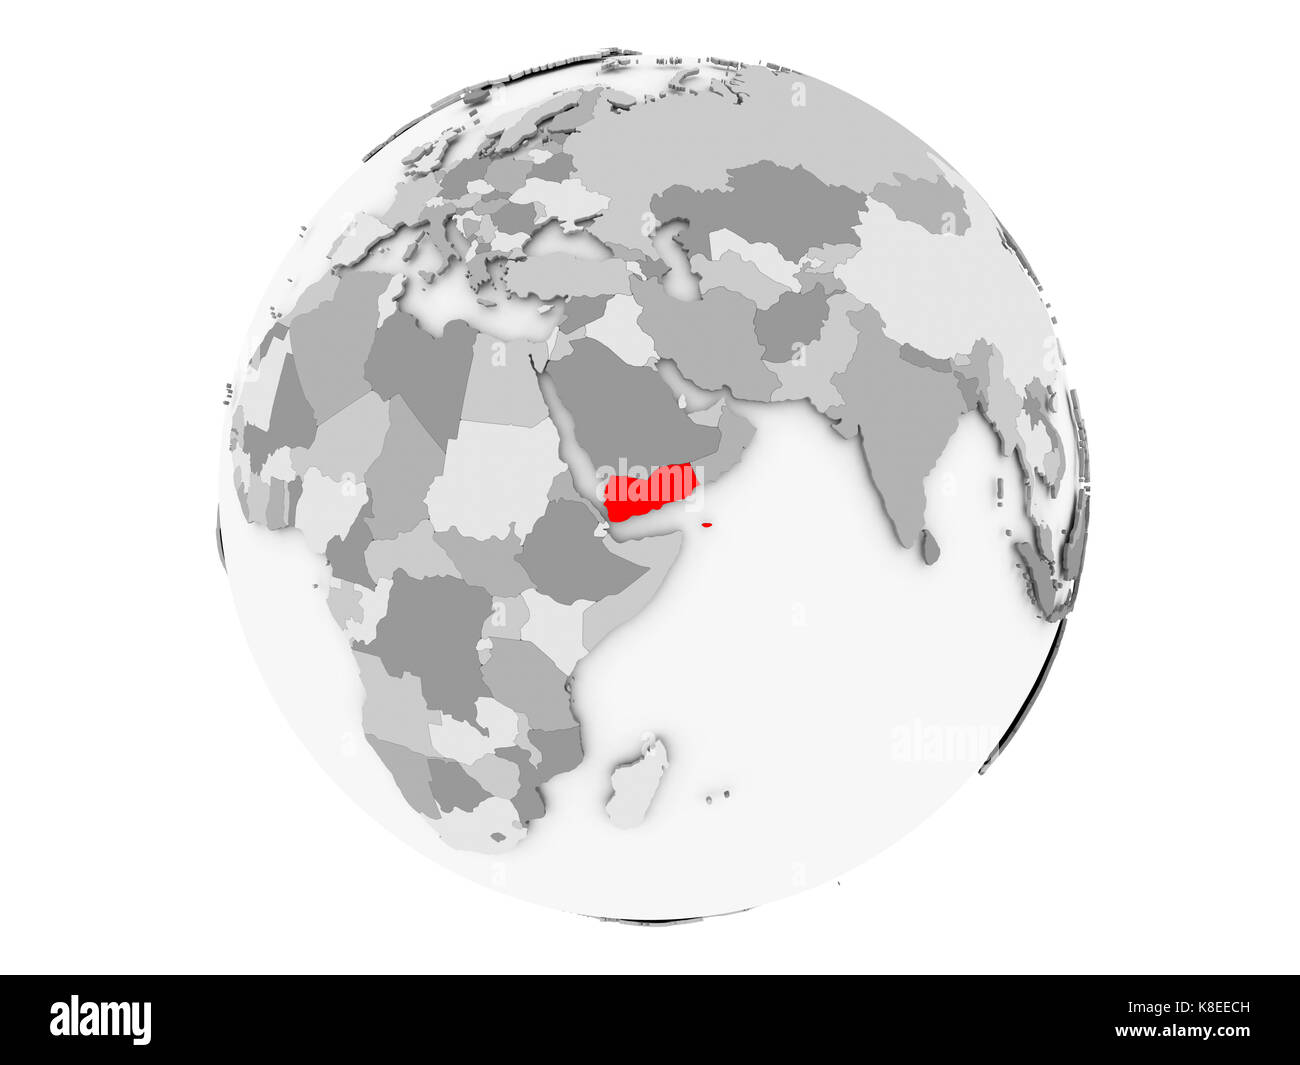 Yemen highlighted in red on grey political globe. 3D illustration isolated on white background. - Stock Image